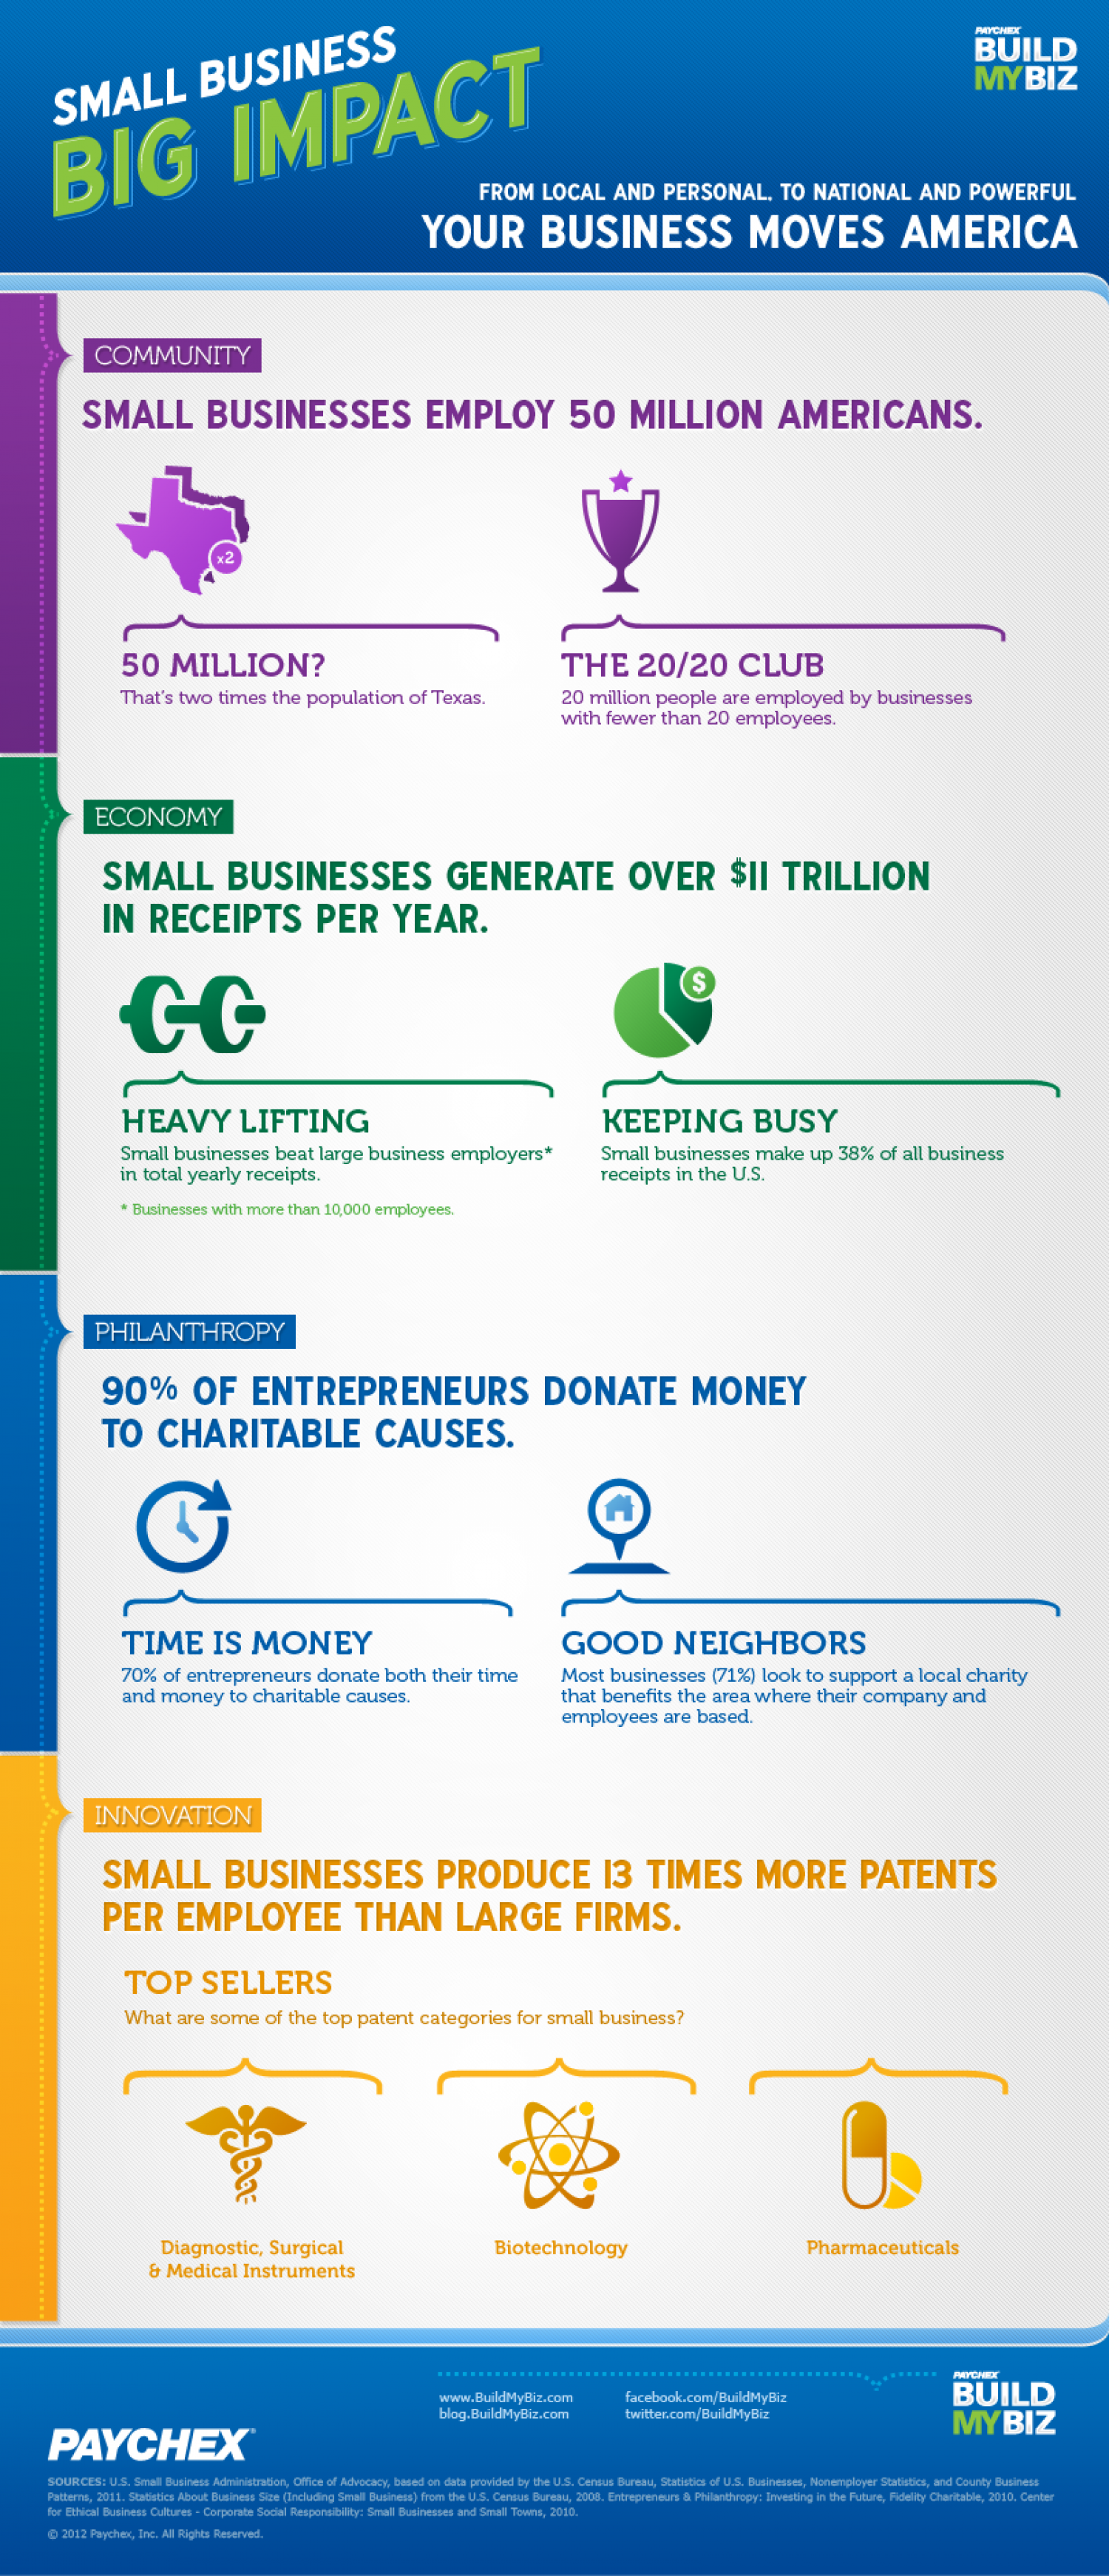 Small Business, Big Impact Infographic